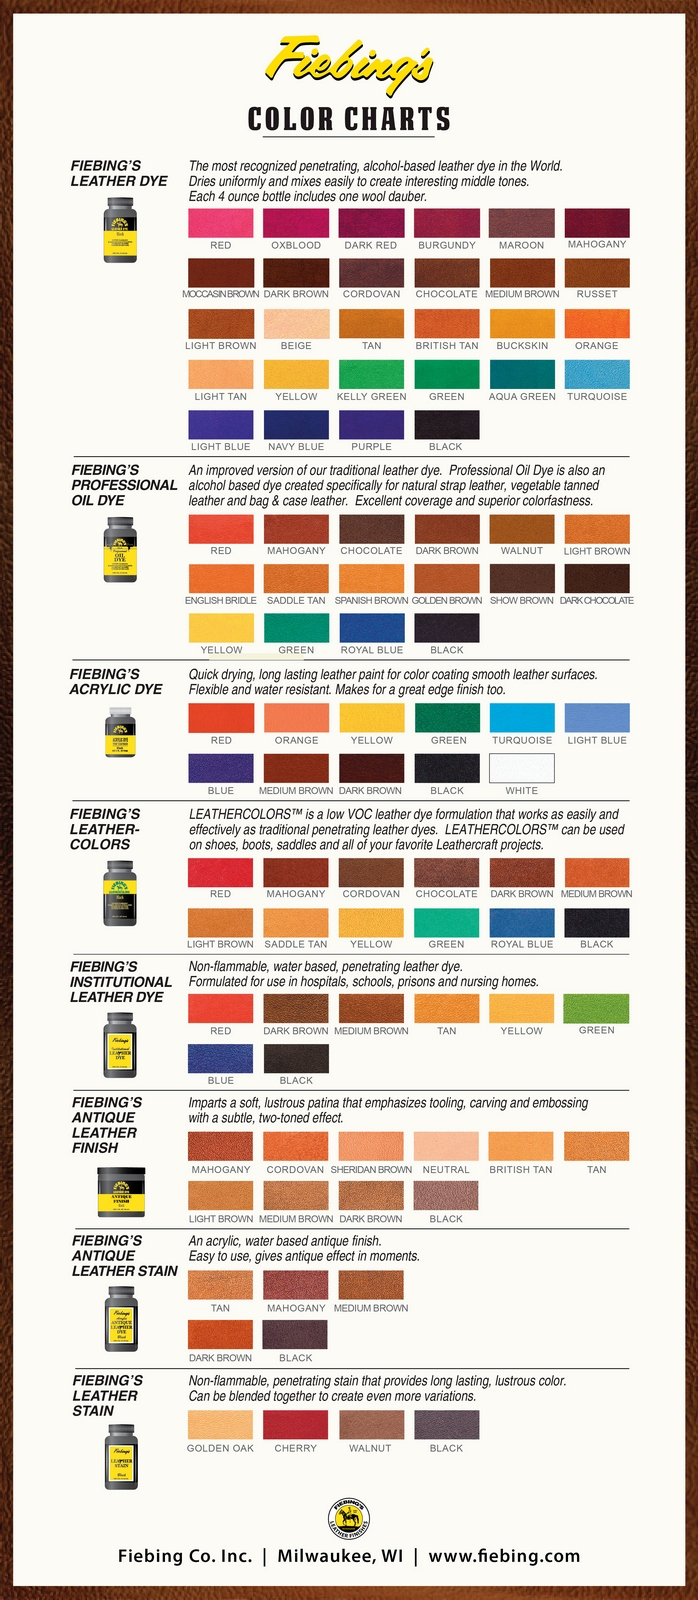 fiebings-color-chart-1600-res.jpg